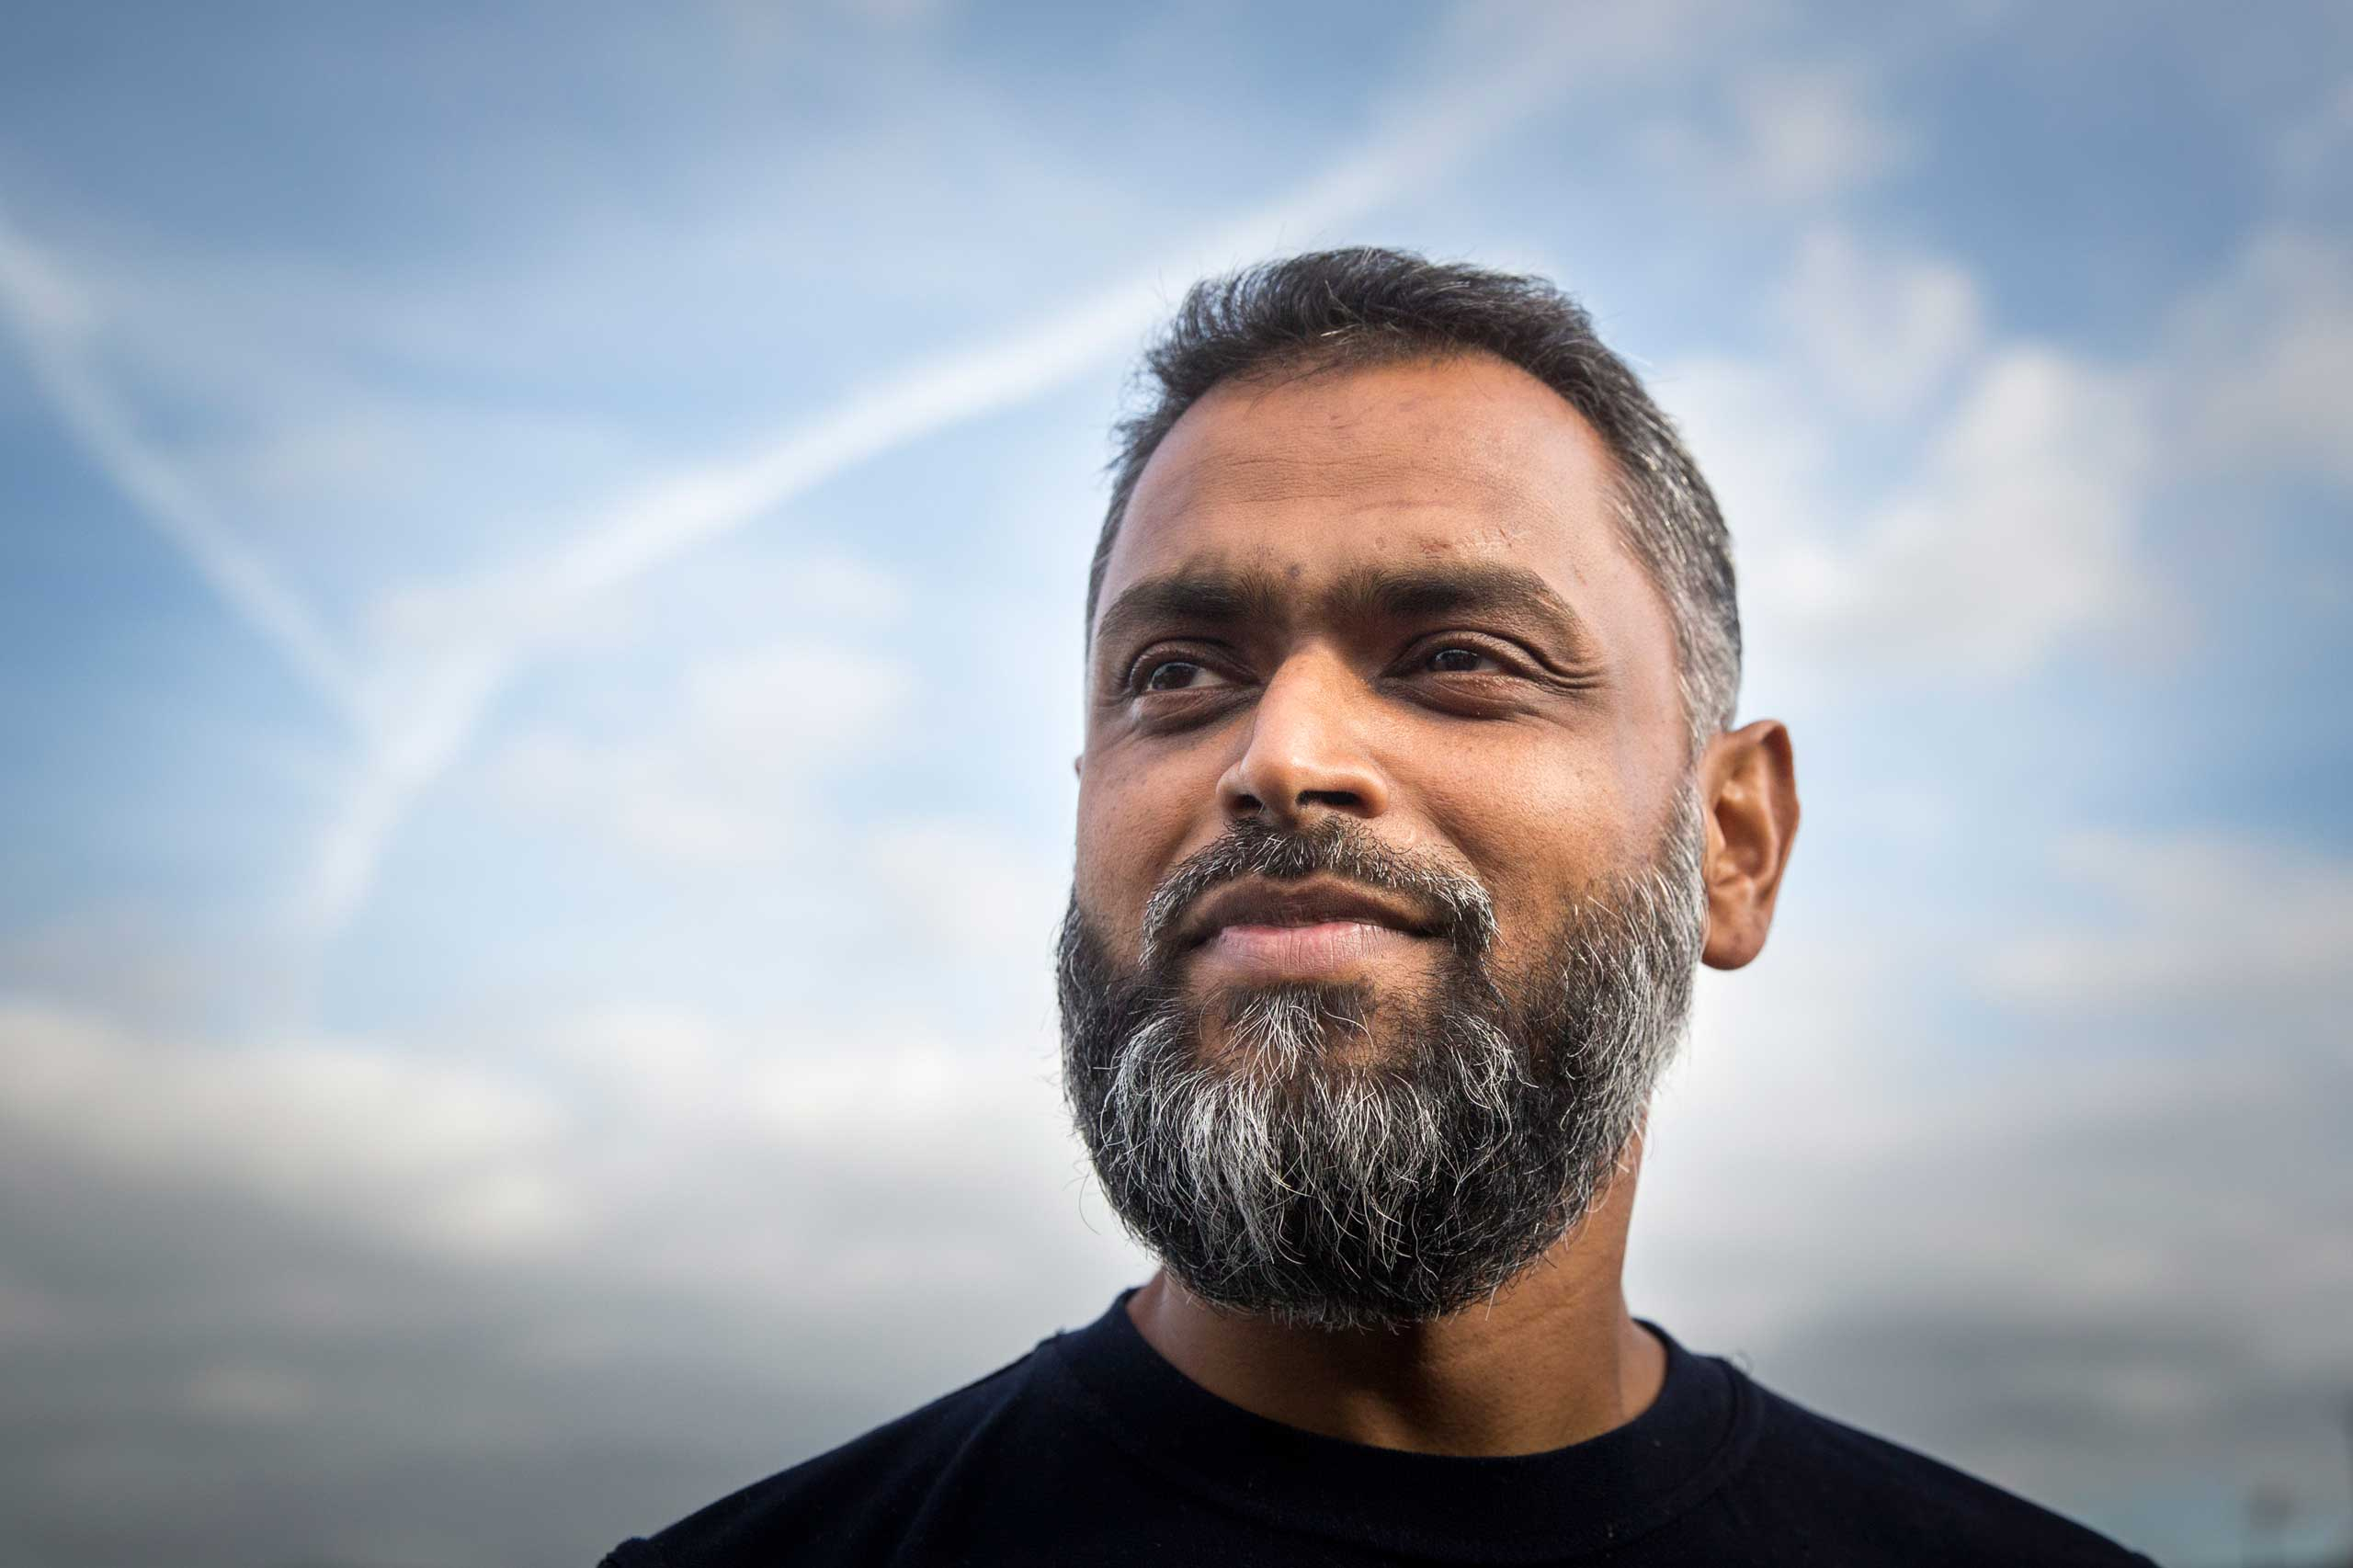 Moazzam Begg, a Pakistani-British man who spent three years in Guantanamo between 2002 and 2005, pictured in London, Oct. 1, 2014.